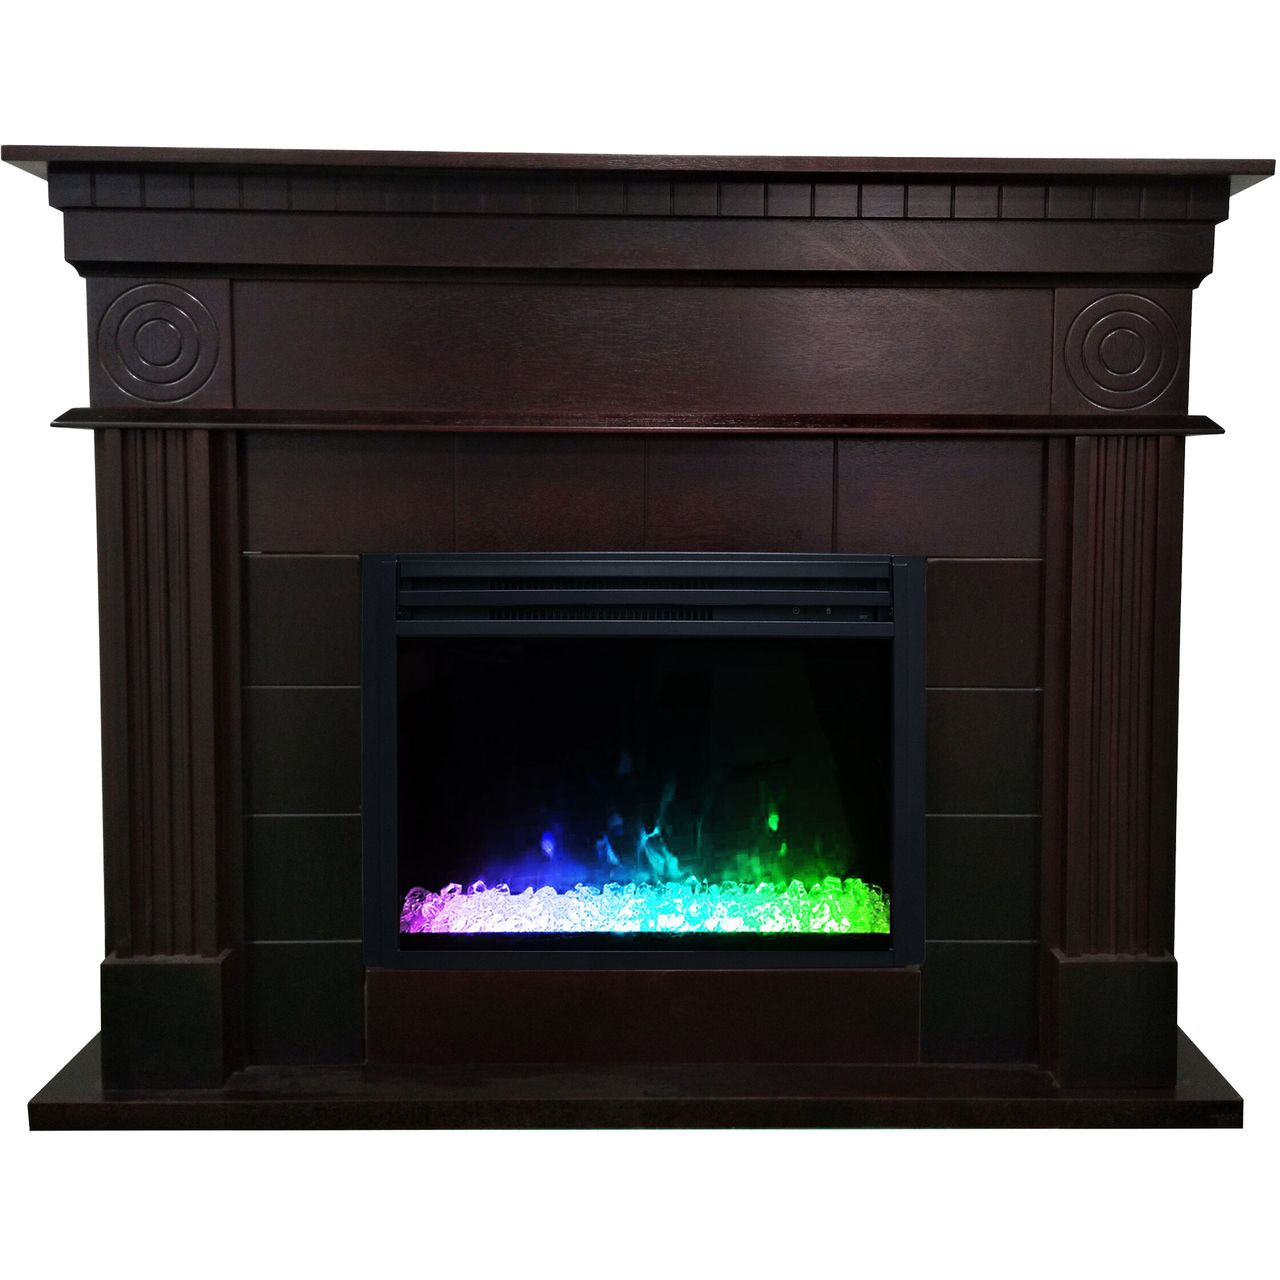 "Cambridge 47.8"" Shelby Electric Fireplace Mantel - Dark Coffee"